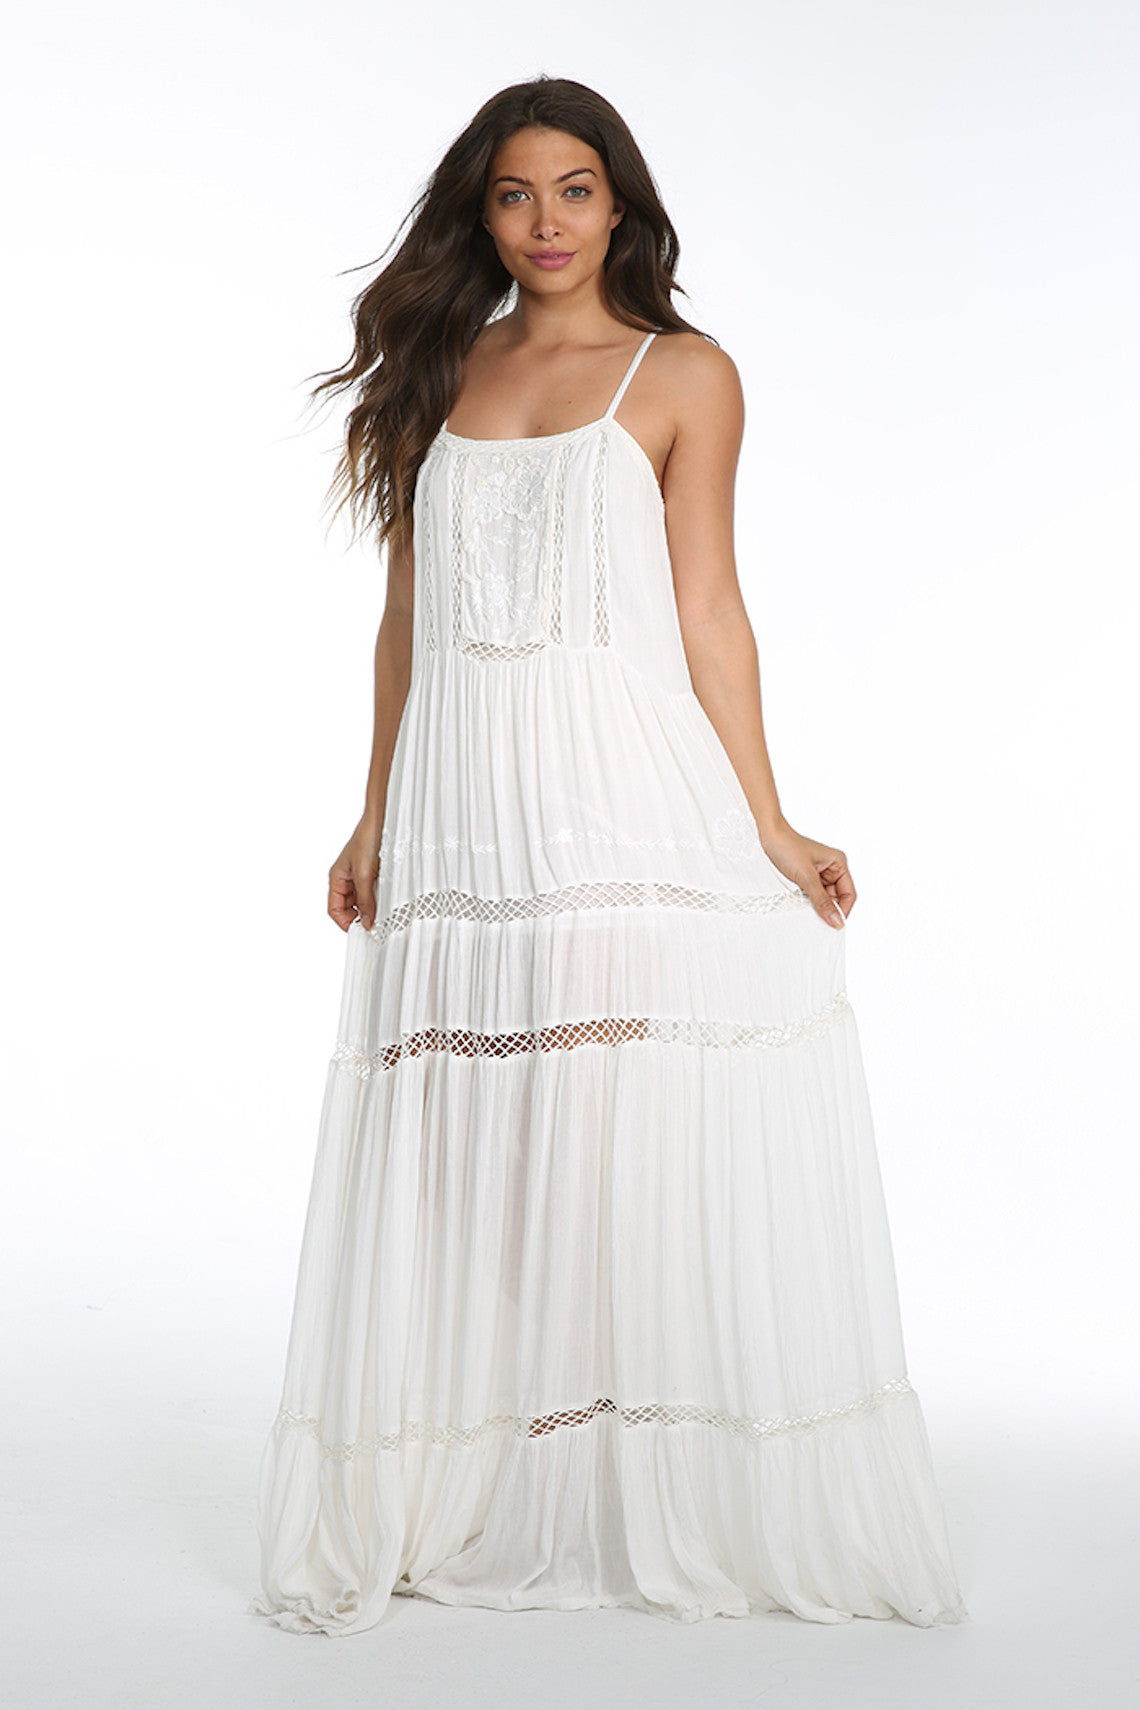 FIESTA DE PLAYA MIDI DRESS - RAGA